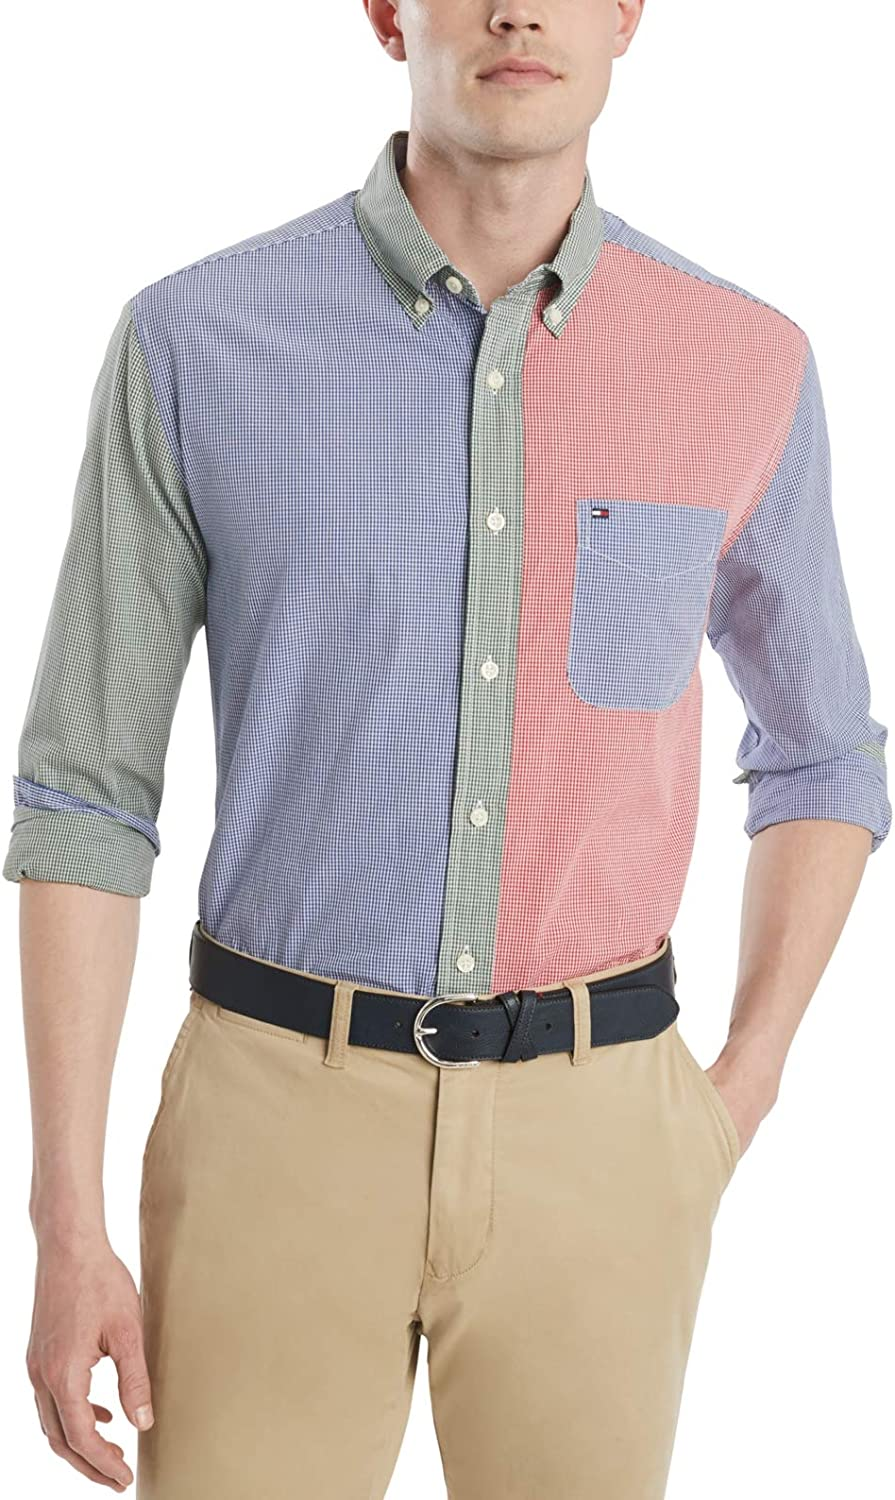 Tommy Hilfiger Men's Long Sleeve Button Down Shirt in Classic Fit